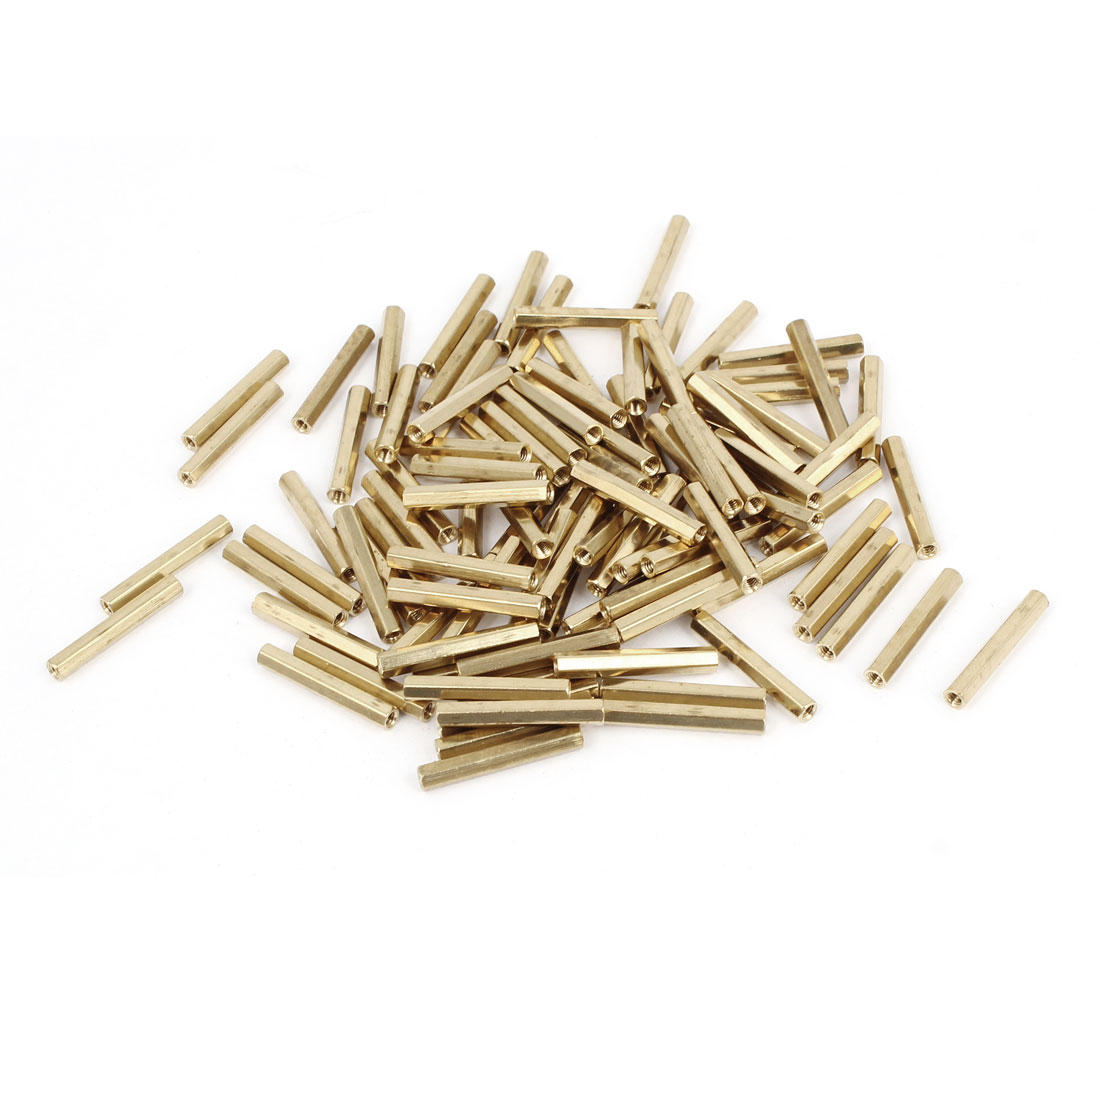 100 Pcs M2 x 20mm Gold Tone Dual Ends CCTV Camera Standoff Hexagonal Nut Spacer